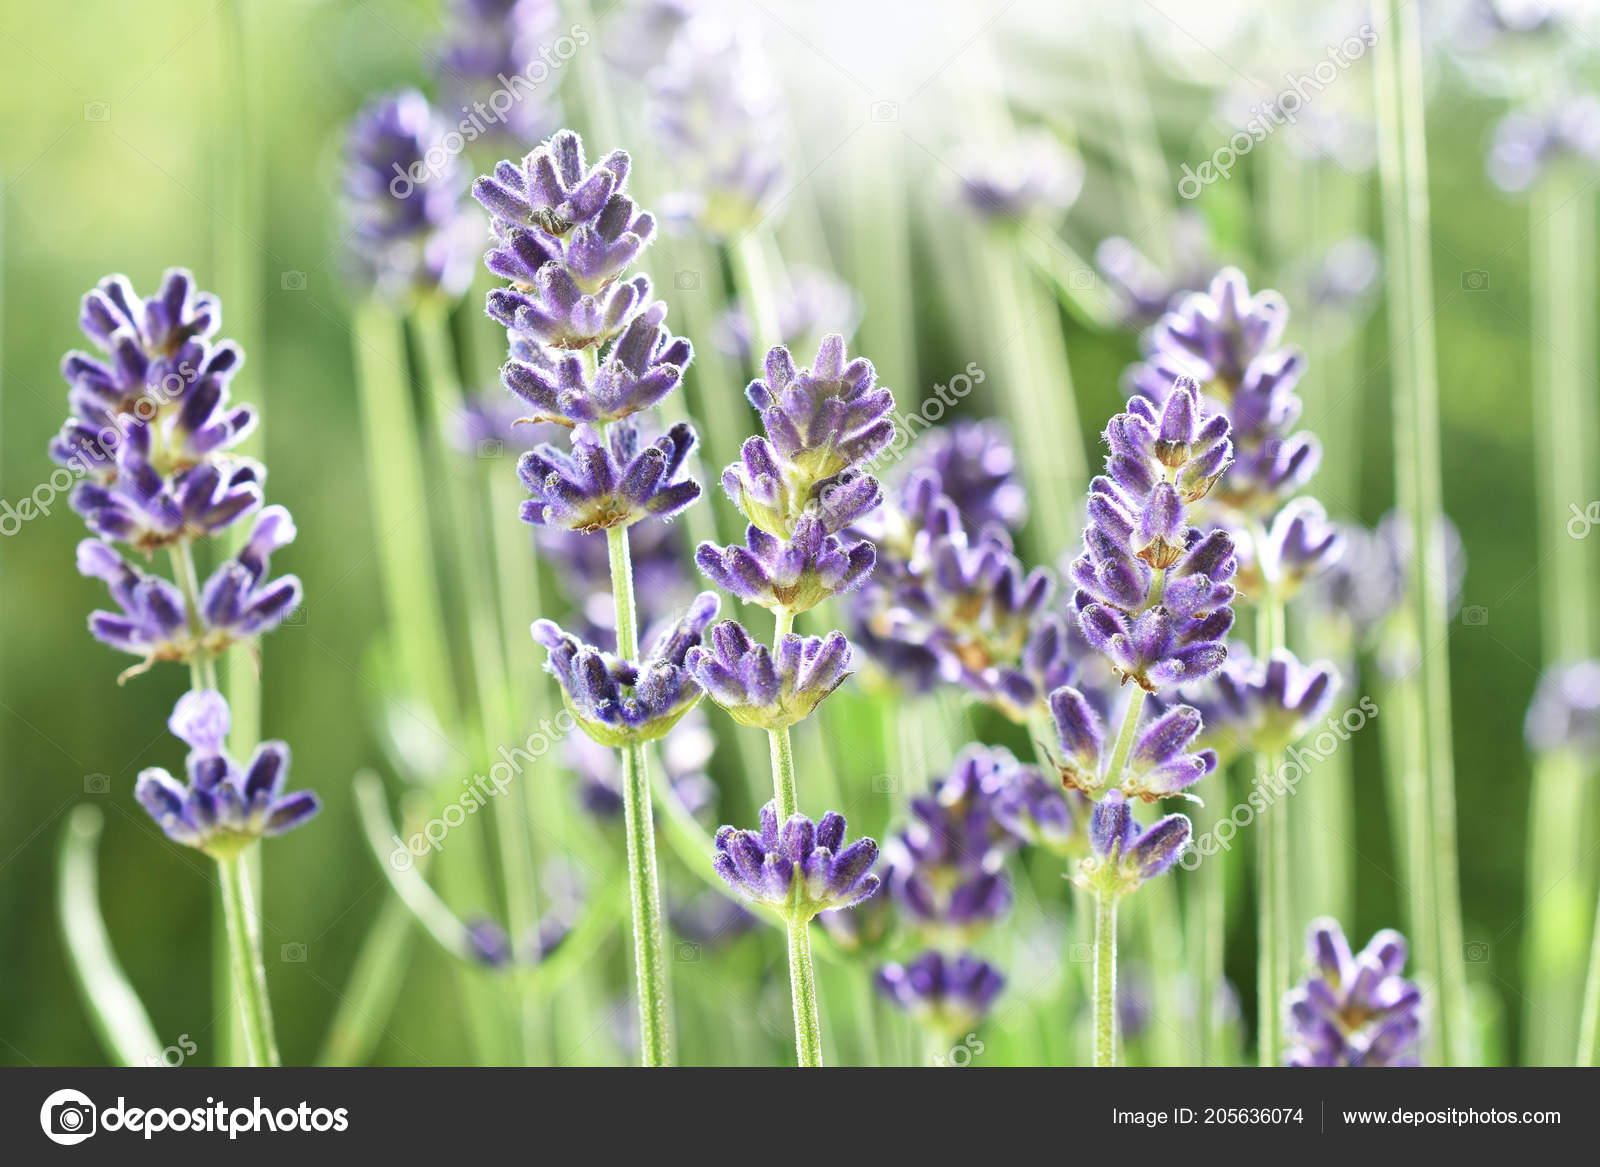 Closeup beautiful lavender flowers blooming garden sunlight closeup beautiful lavender flowers blooming garden sunlight izmirmasajfo